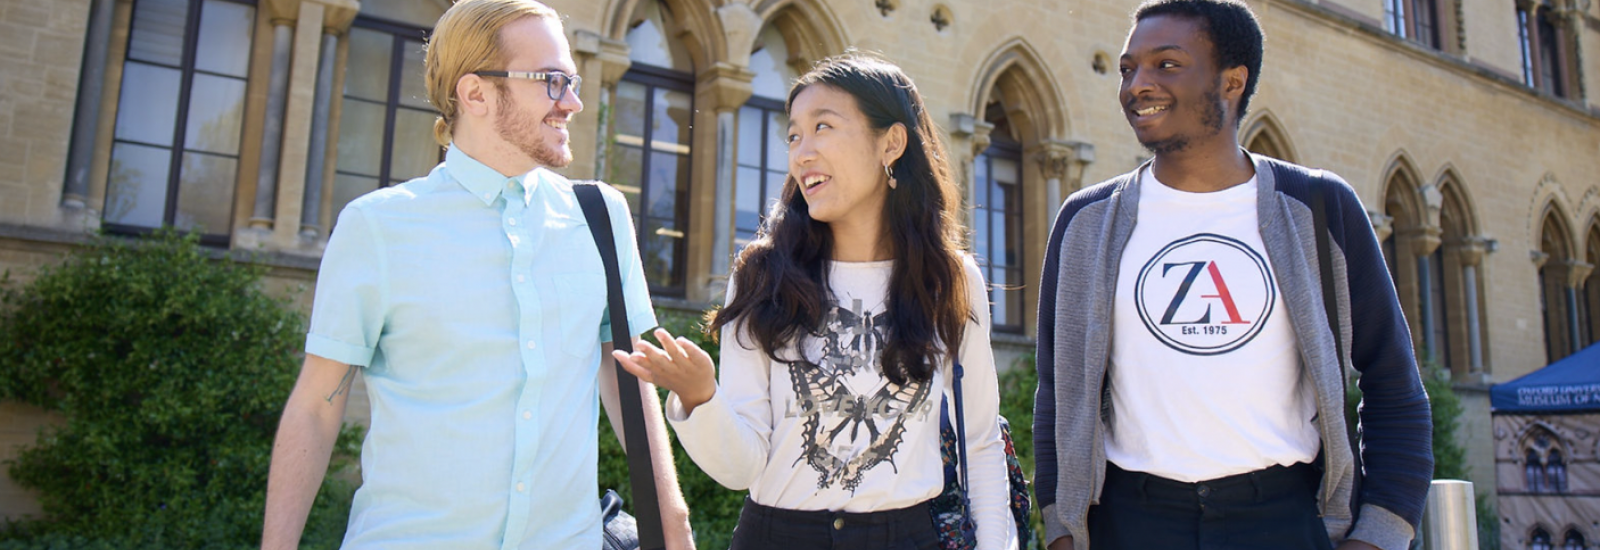 Three students in front of Oxford University Museum of Natural History. Credits: Ian Wallman, University of Oxford